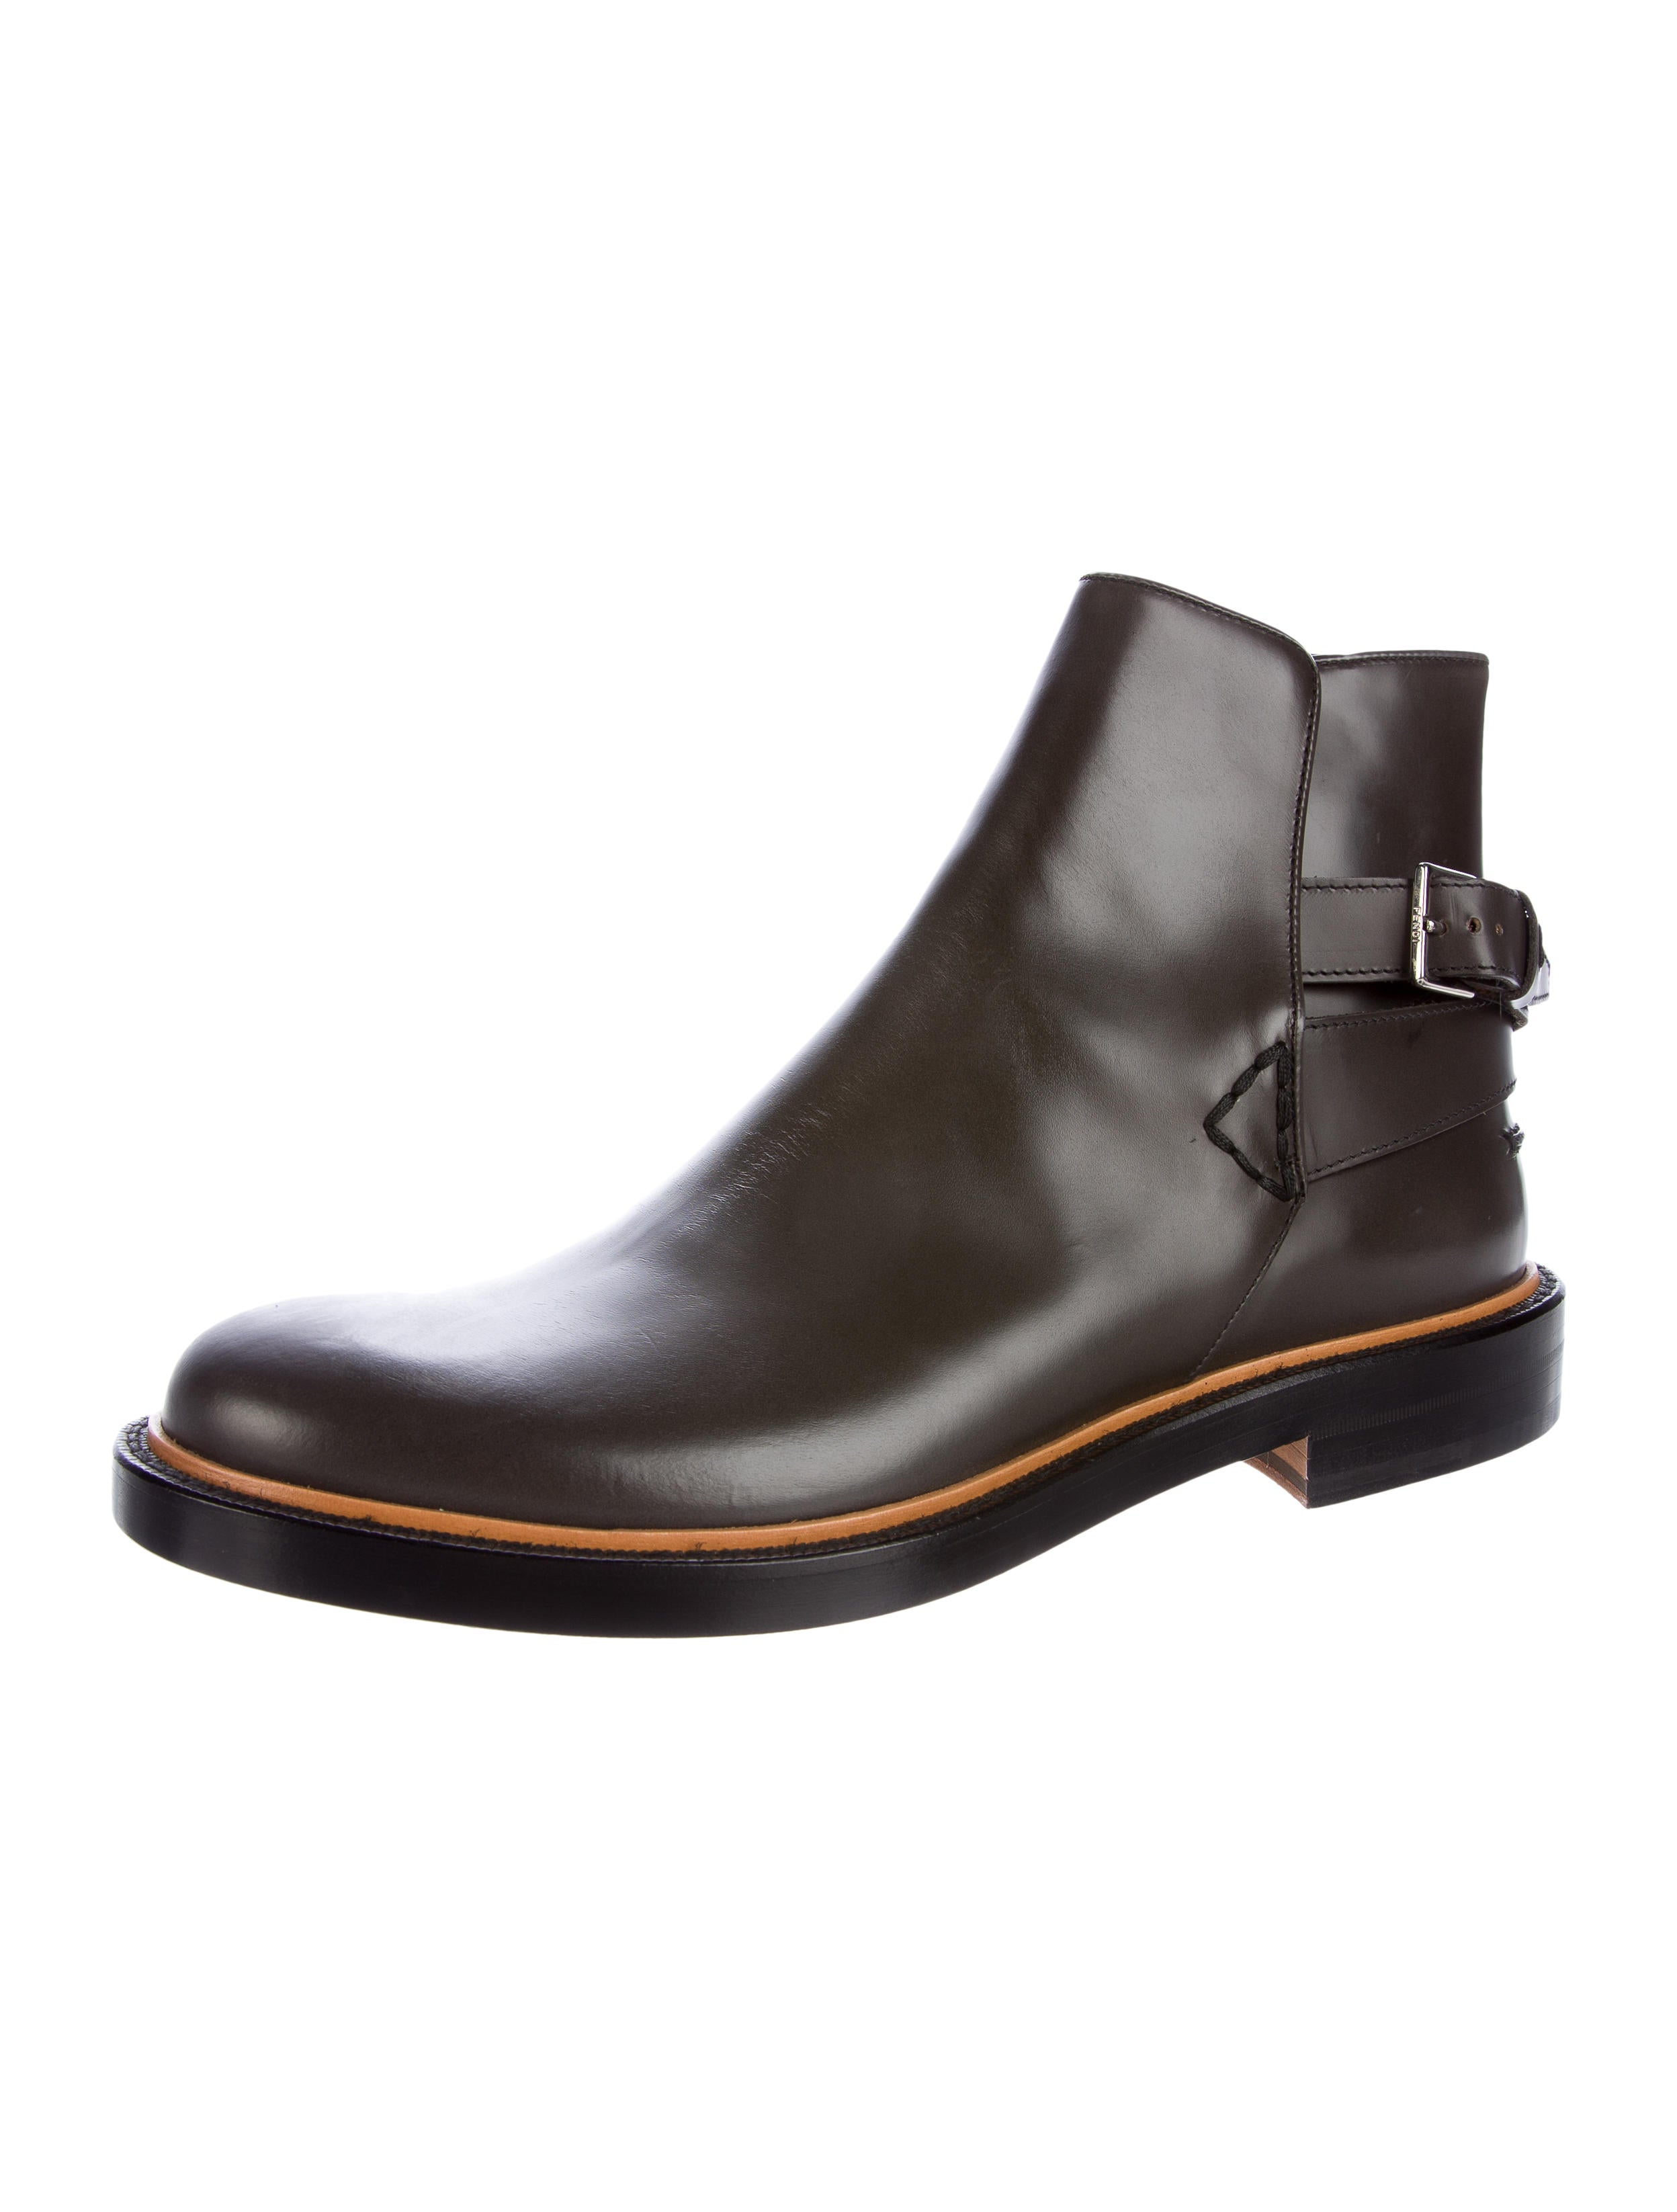 Jodhpur boots for women are worn by riders with jodhpur pants or with regular riding breeches. Jodhpur boots are a traditionally styled pull-on boot usually made of leather or patent leather. Jodhpur boots feature a ridged non-slip sole with a heel that will stop .